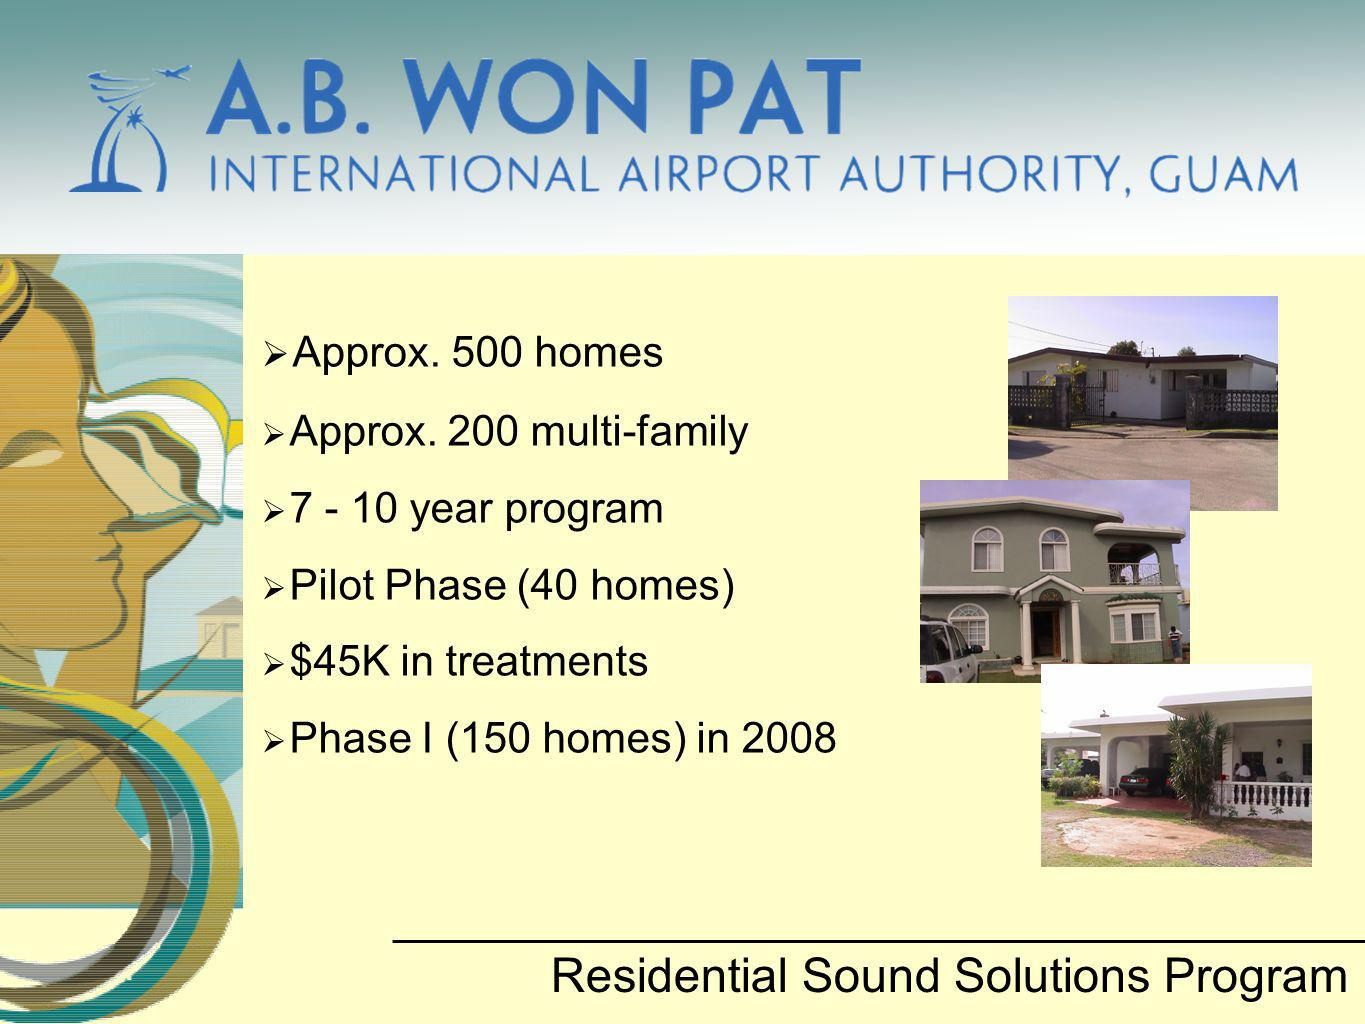 Residential Sound Solutions Program